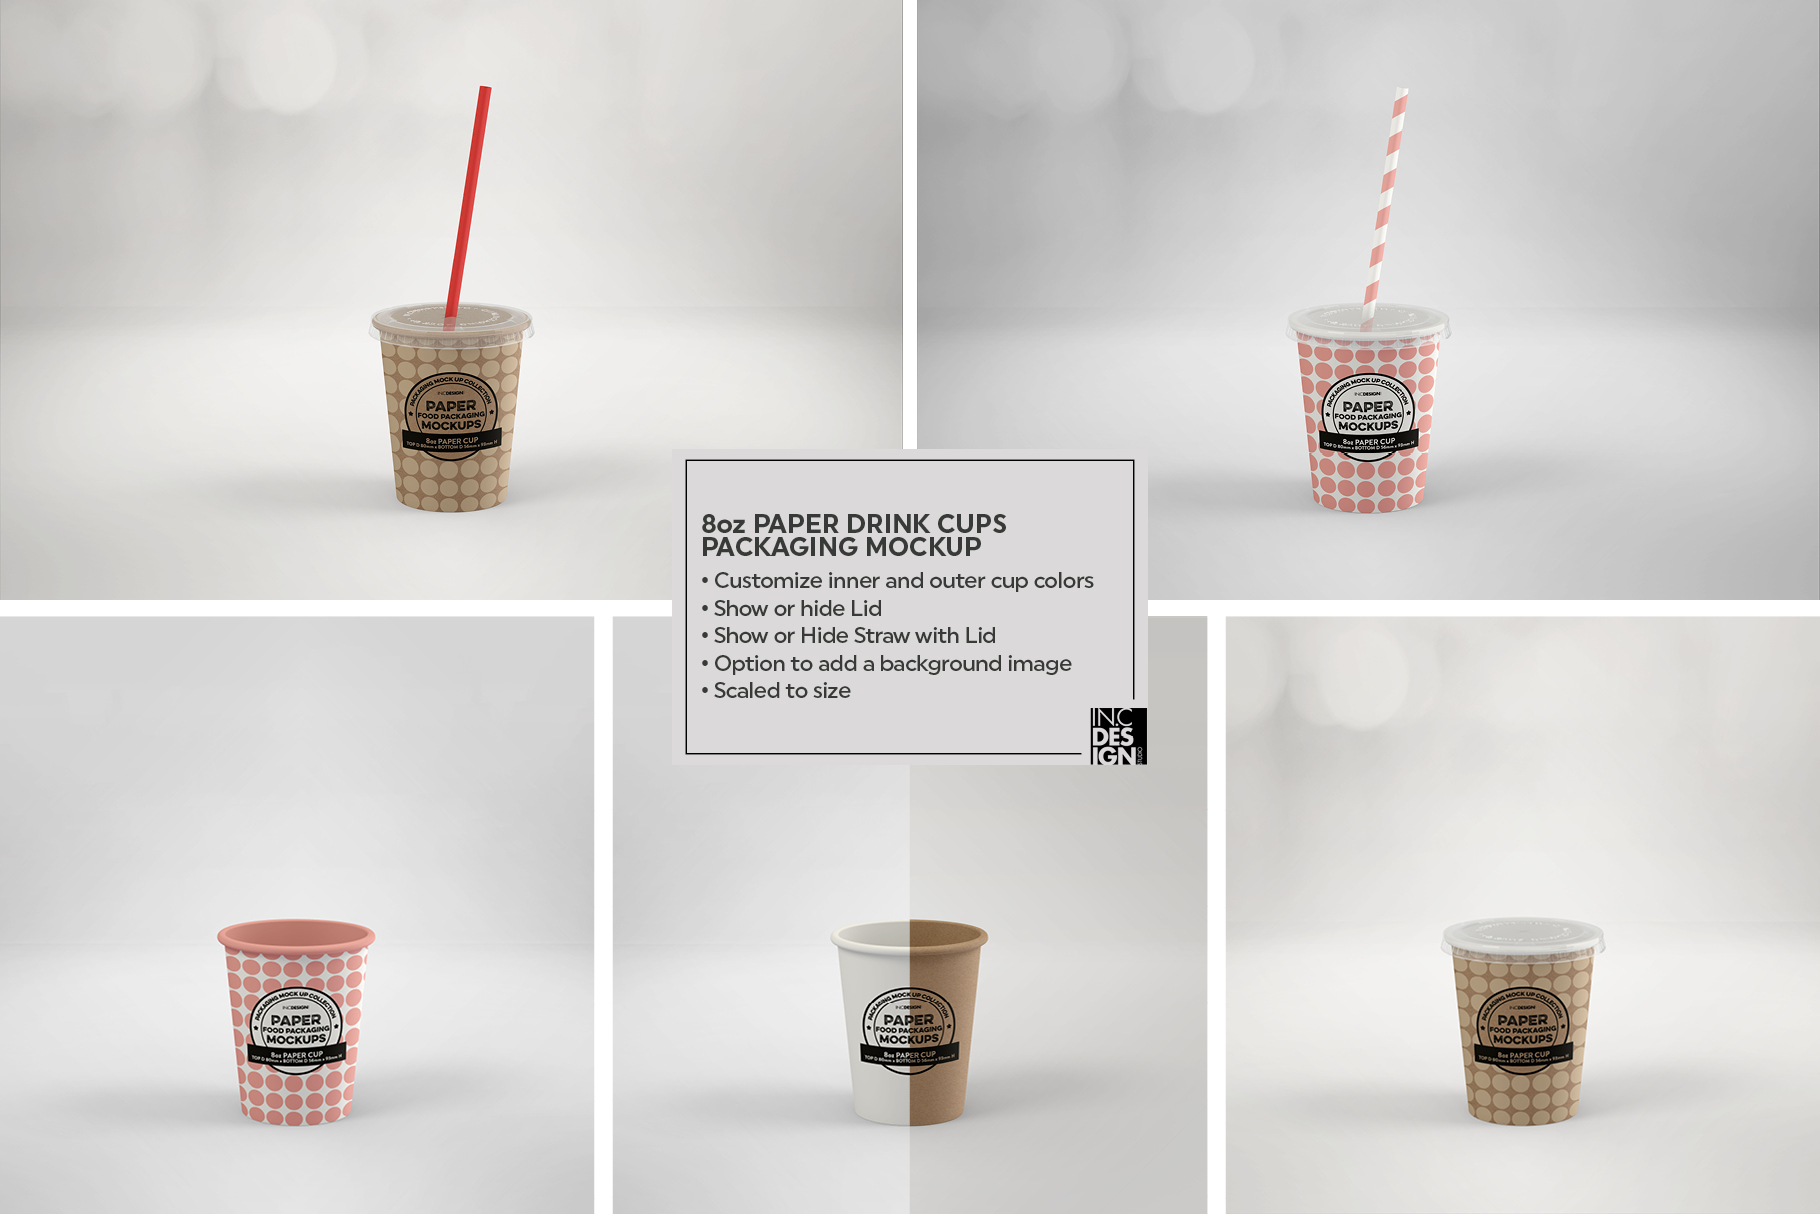 Paper Drink Cups Packaging Mockup example image 8